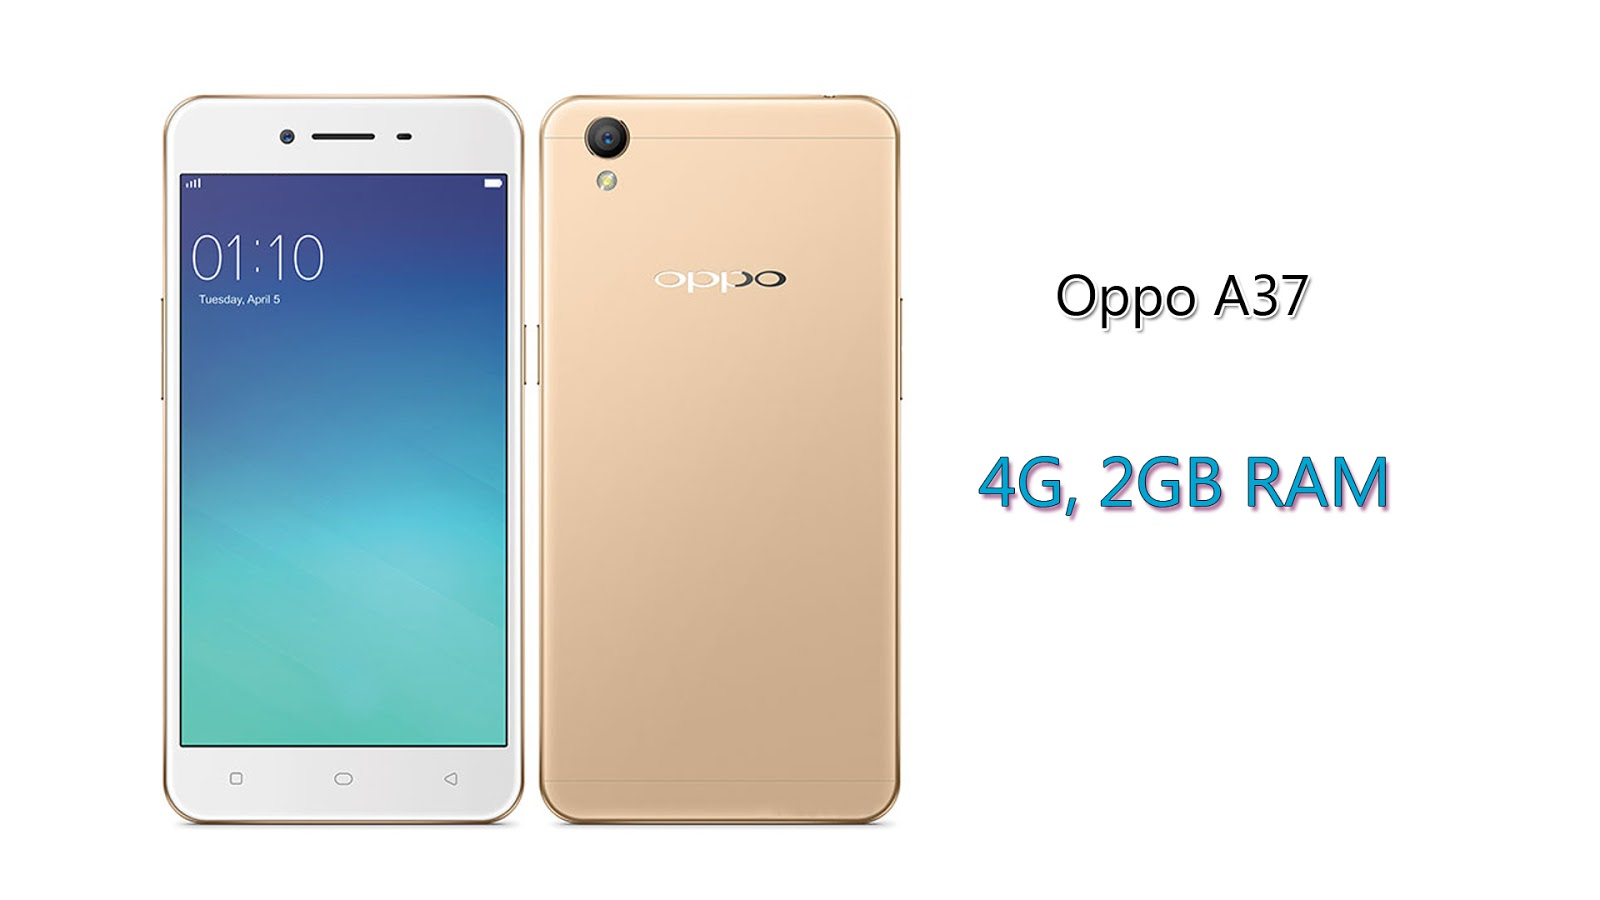 Hd wallpaper oppo a37 - Oppo A37 Full Mobile Specifications Price In Oppo Smart Mobiles